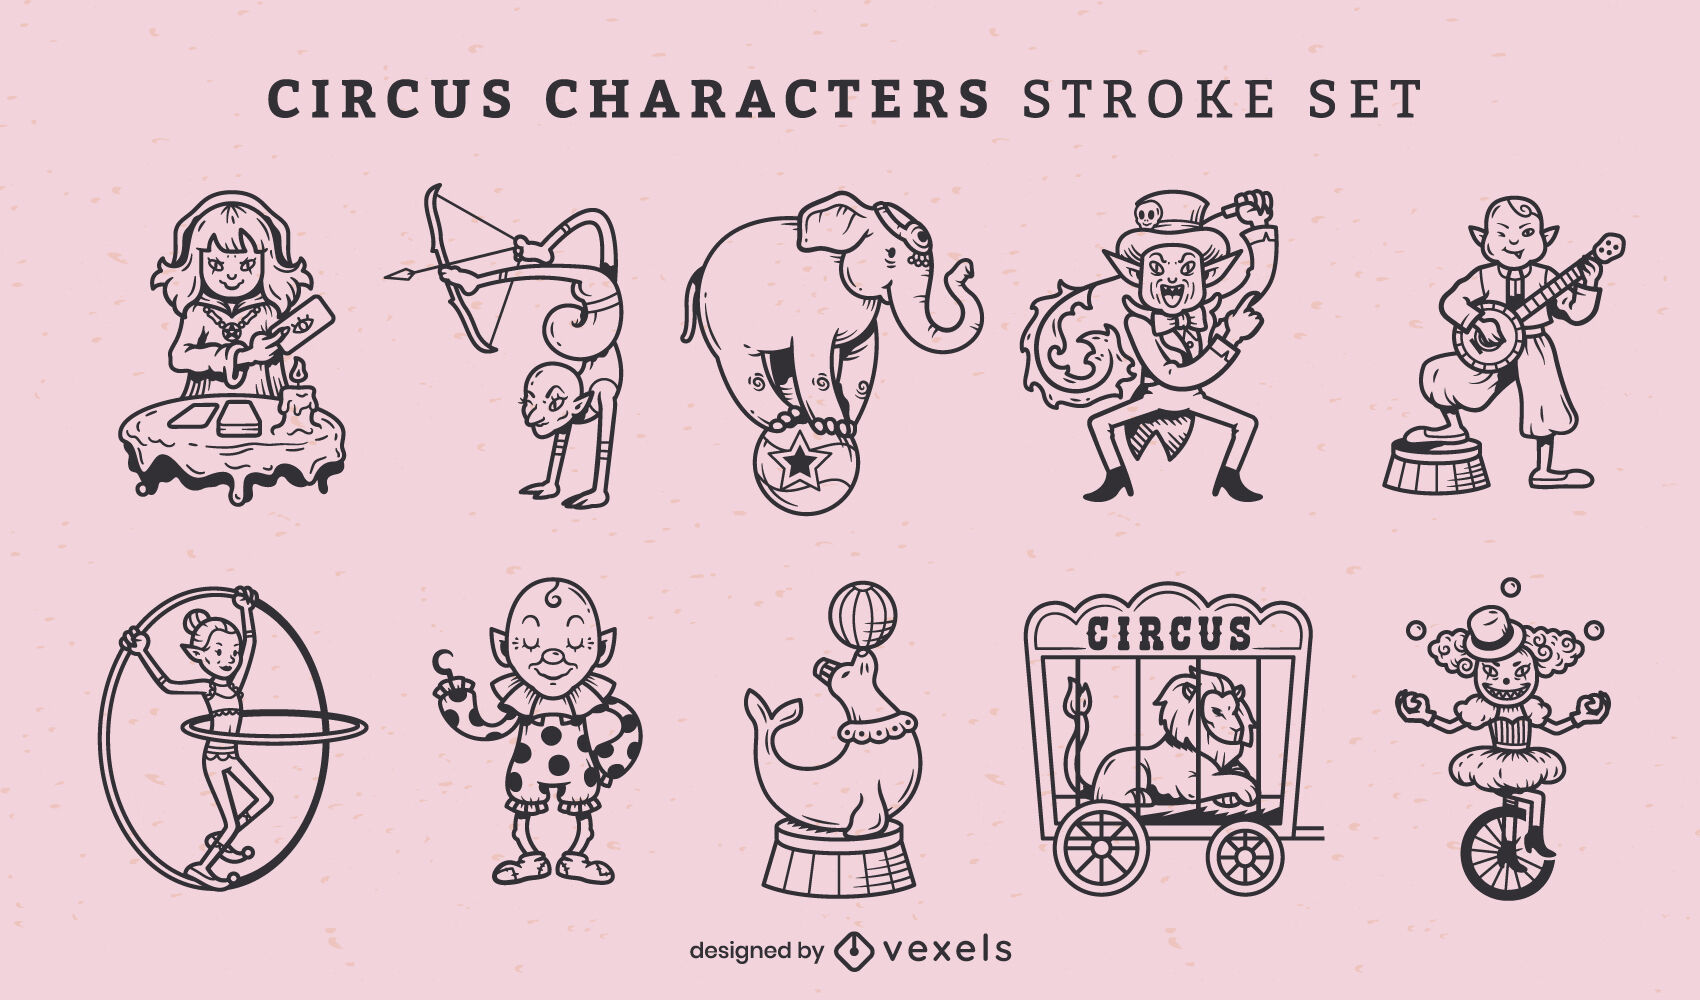 Circus and carnival performers stroke set